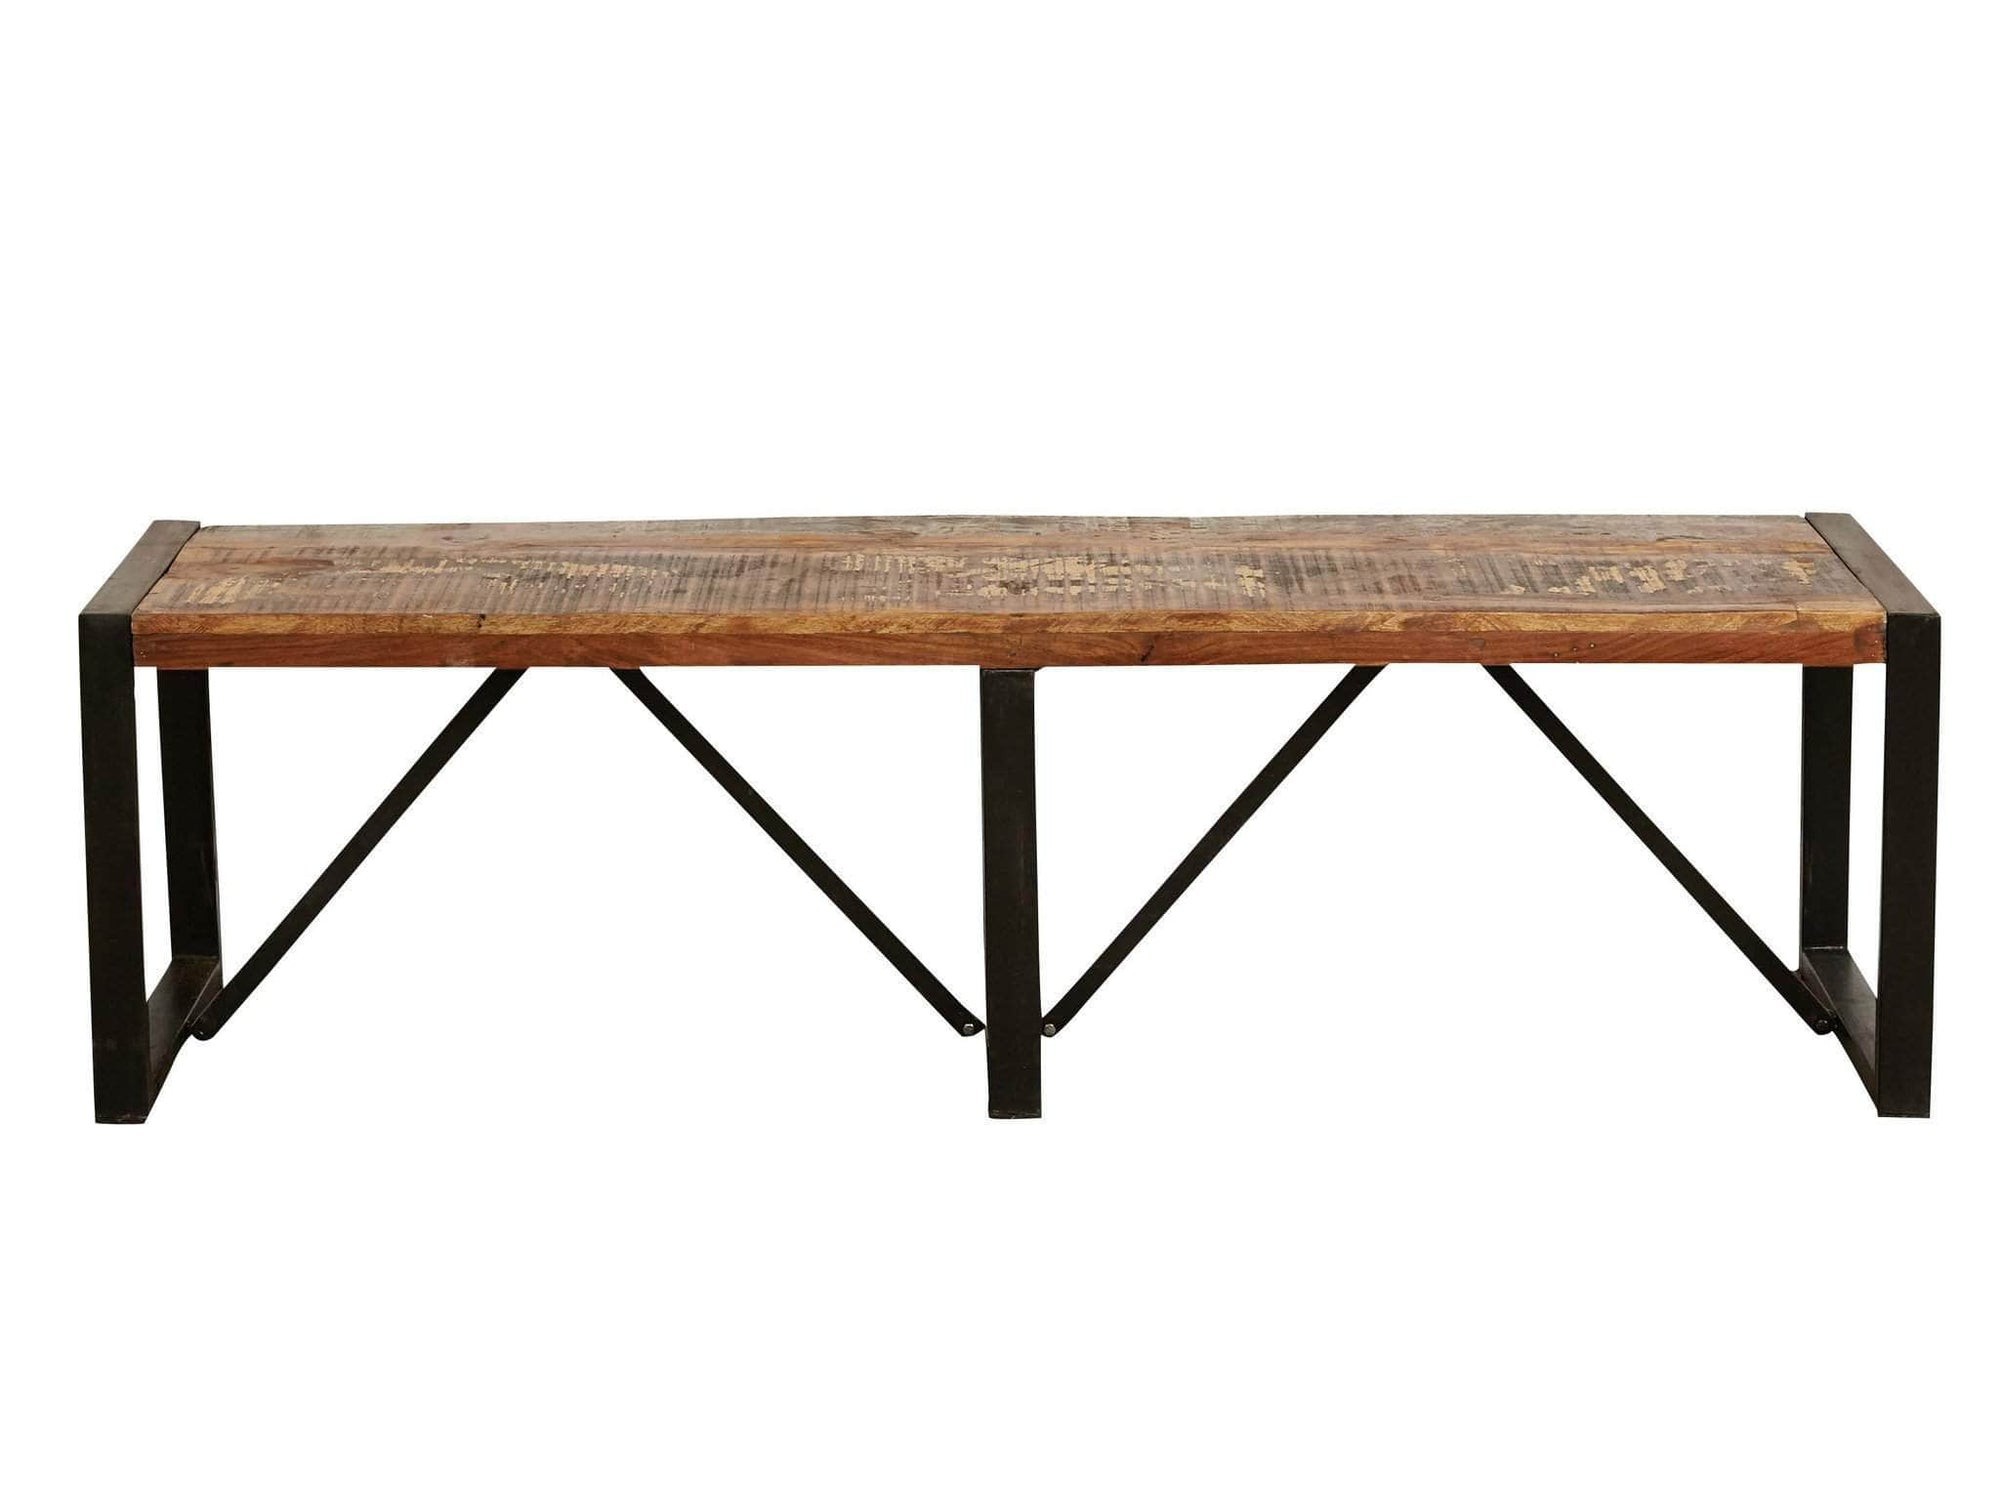 Large reclaimed wood dining bench